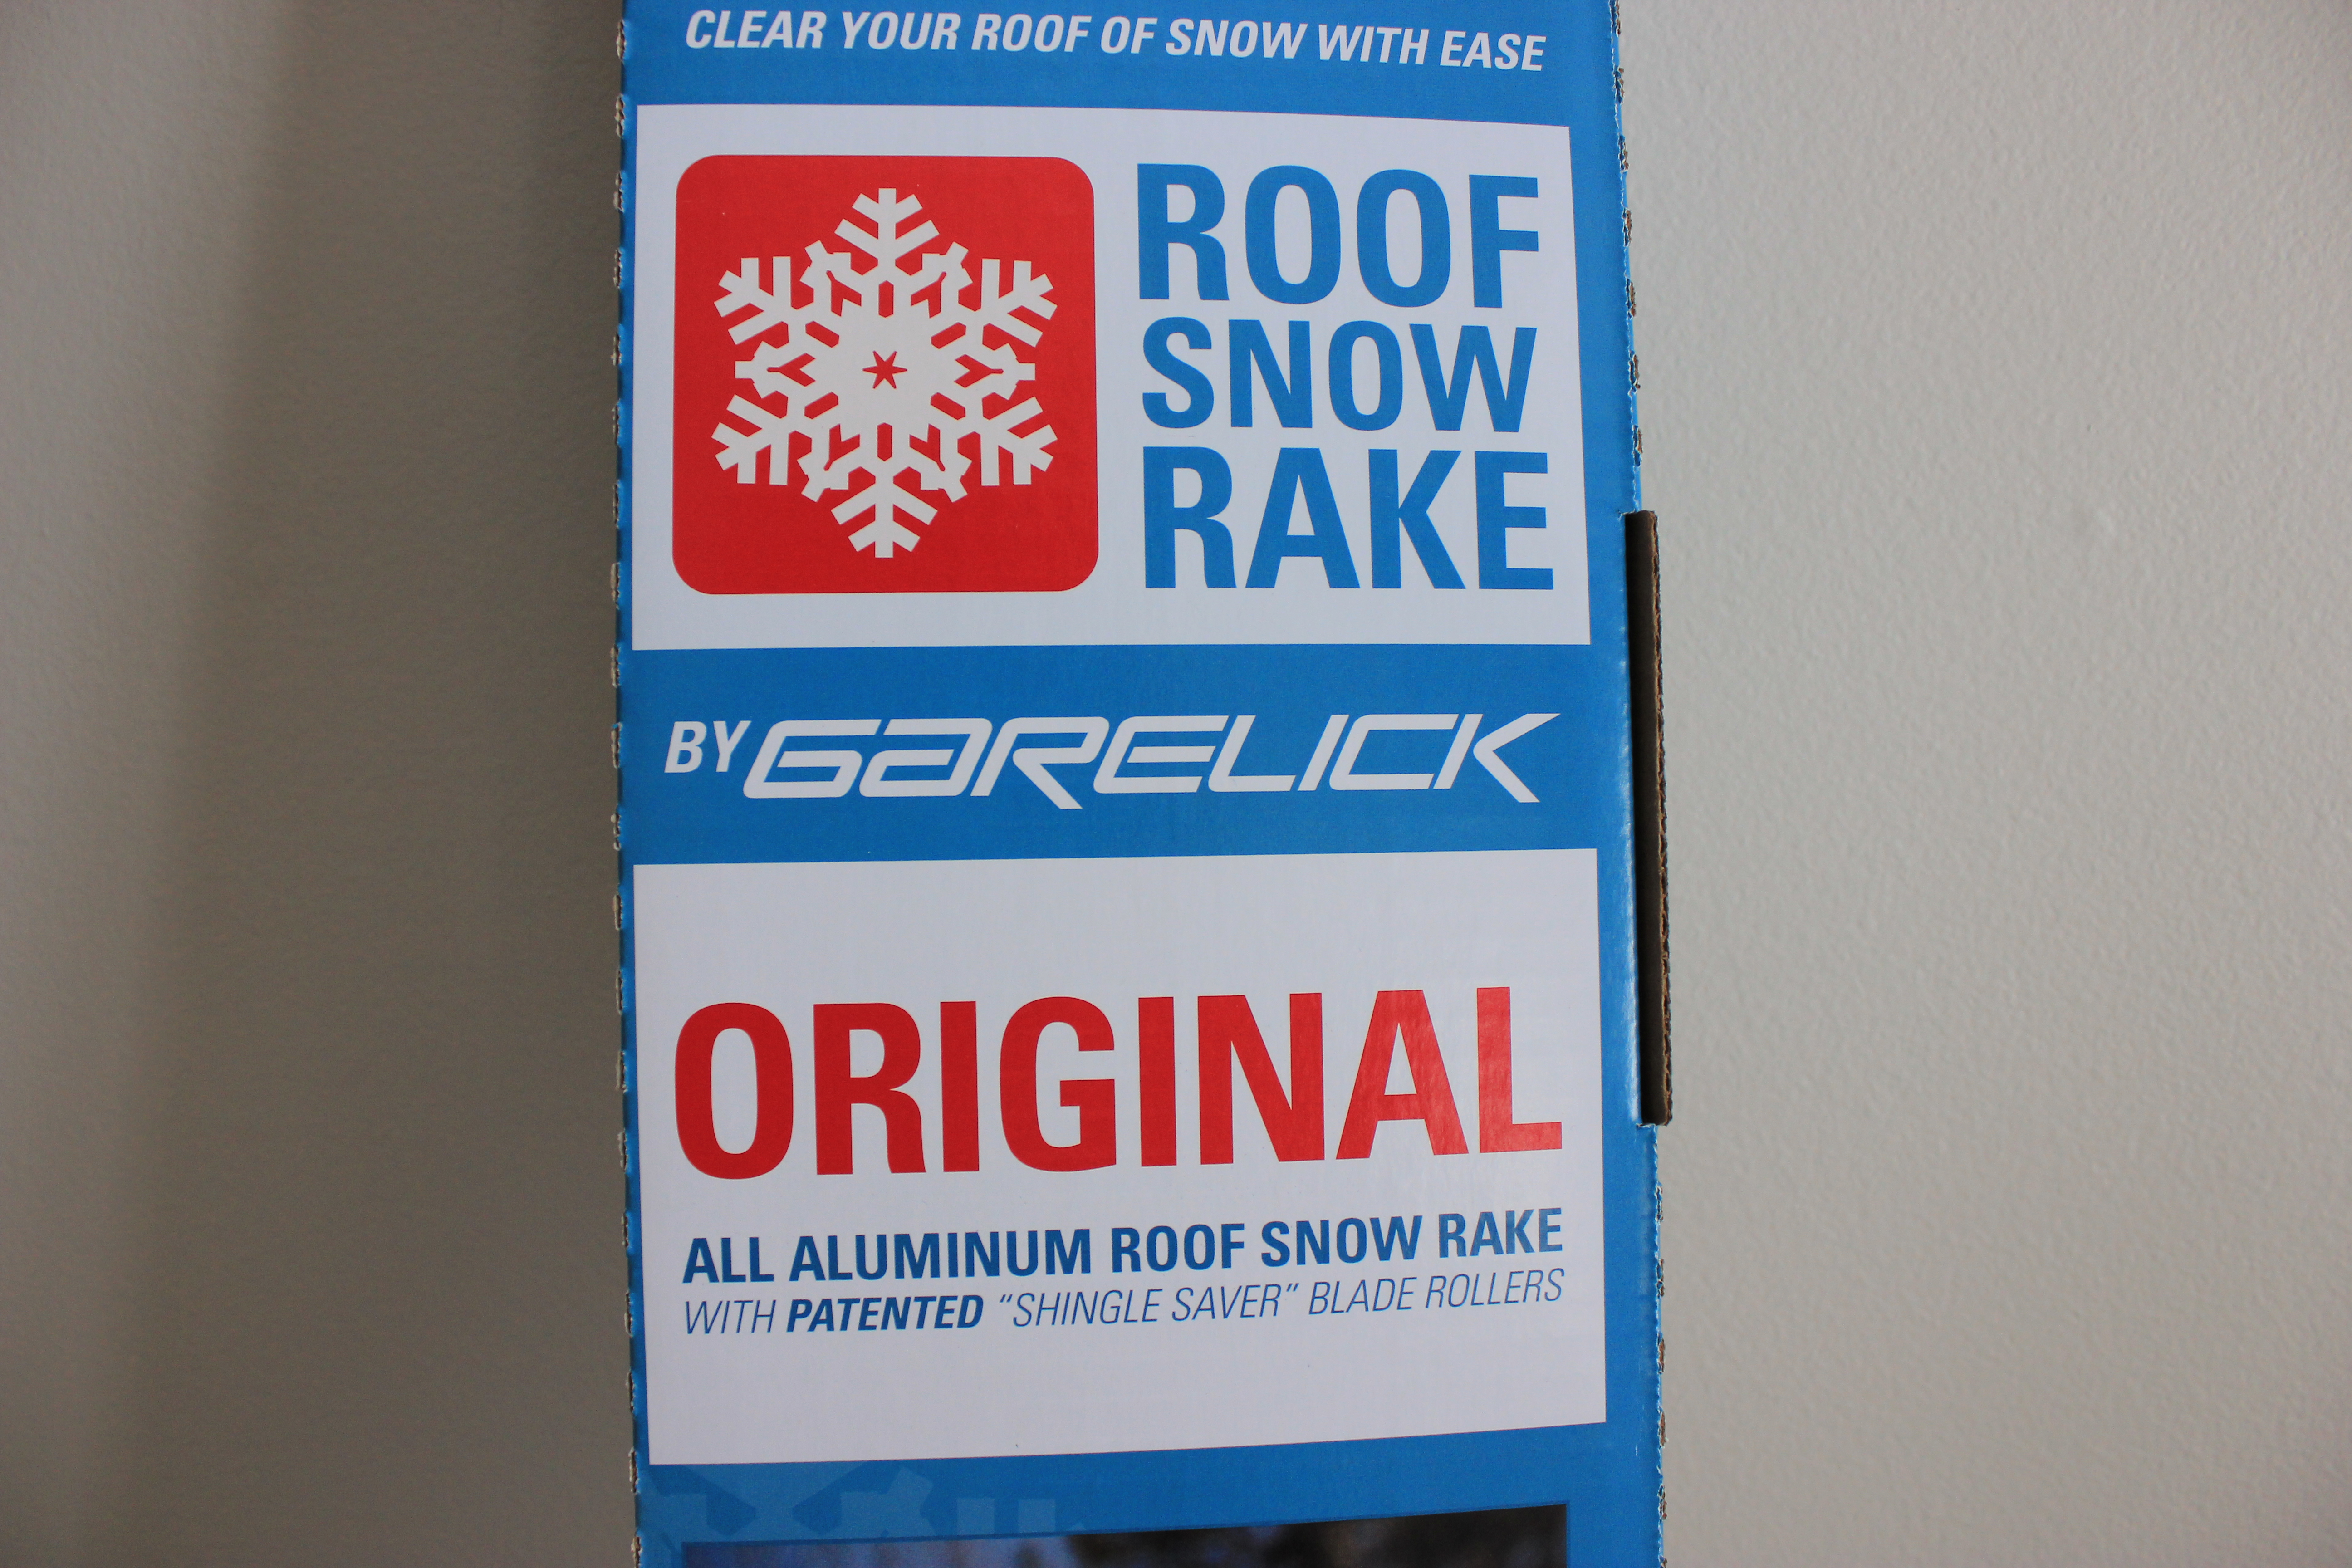 I Felt Fortunate To Find A Roof Rake At The Very First Store I Visited, Our  Local Ace Hardware. I Usually Go To Menards Or Home Depot First, Thinking  Iu0027ll ...